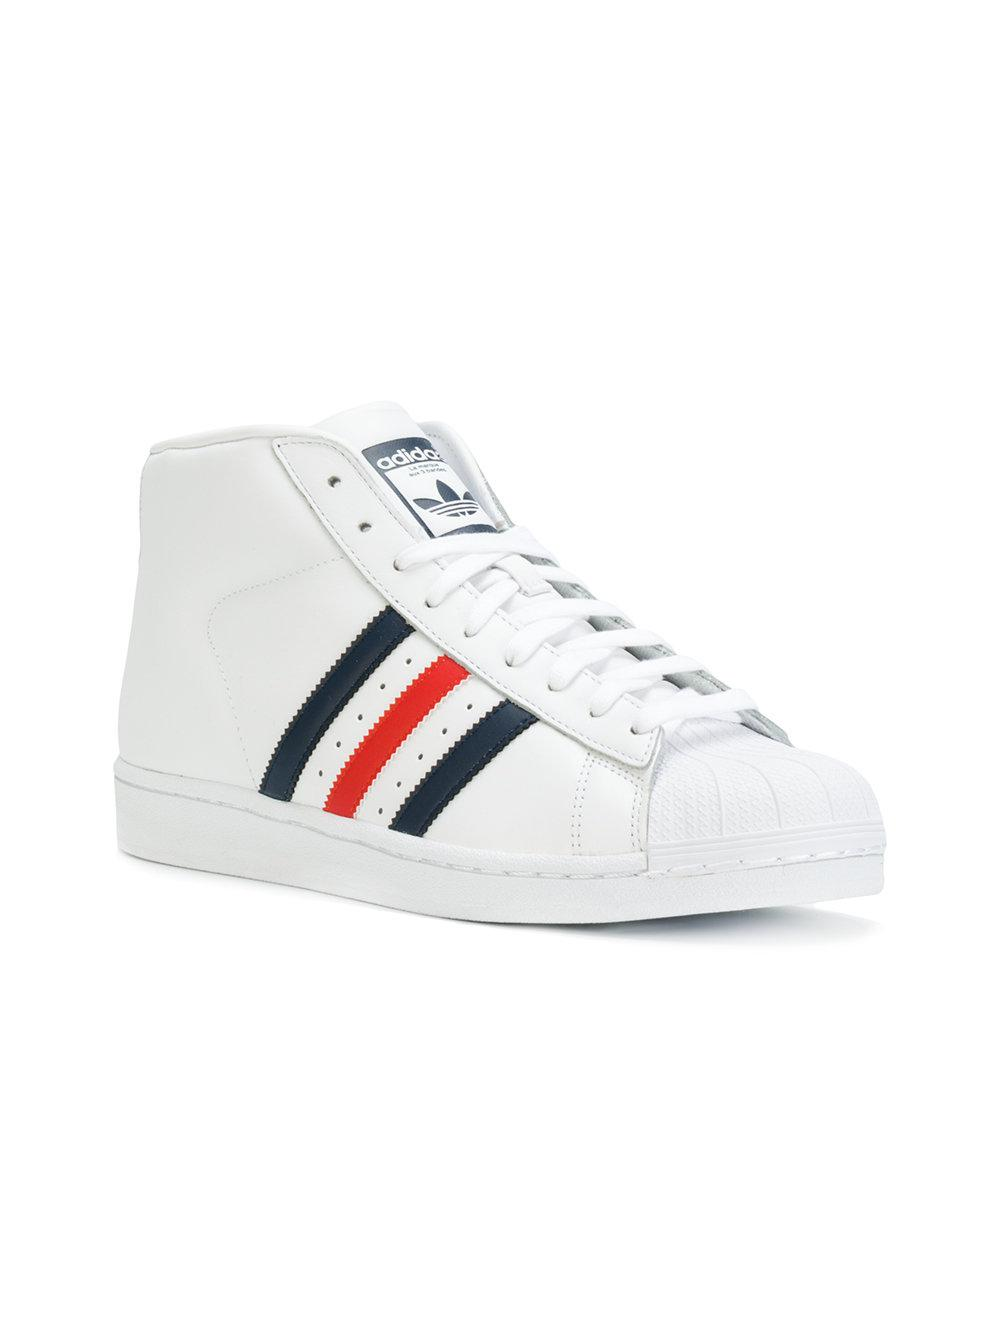 6b10efe4c8a6 Lyst - Adidas Lace-up Hi-top Sneakers in White for Men